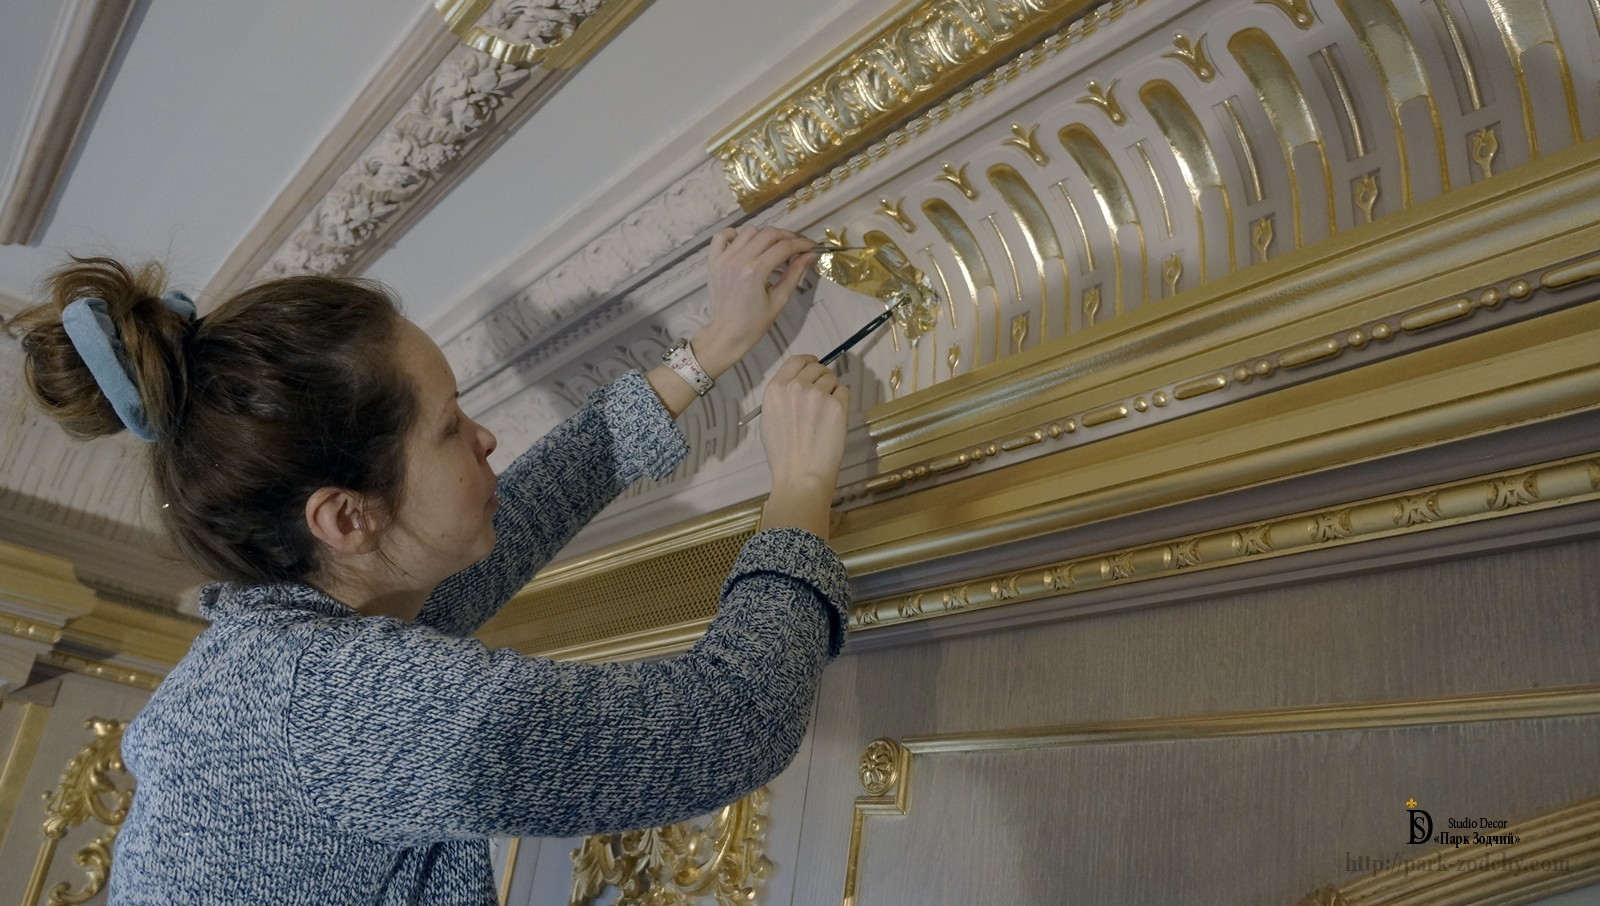 The gilding of the cornice with spoons